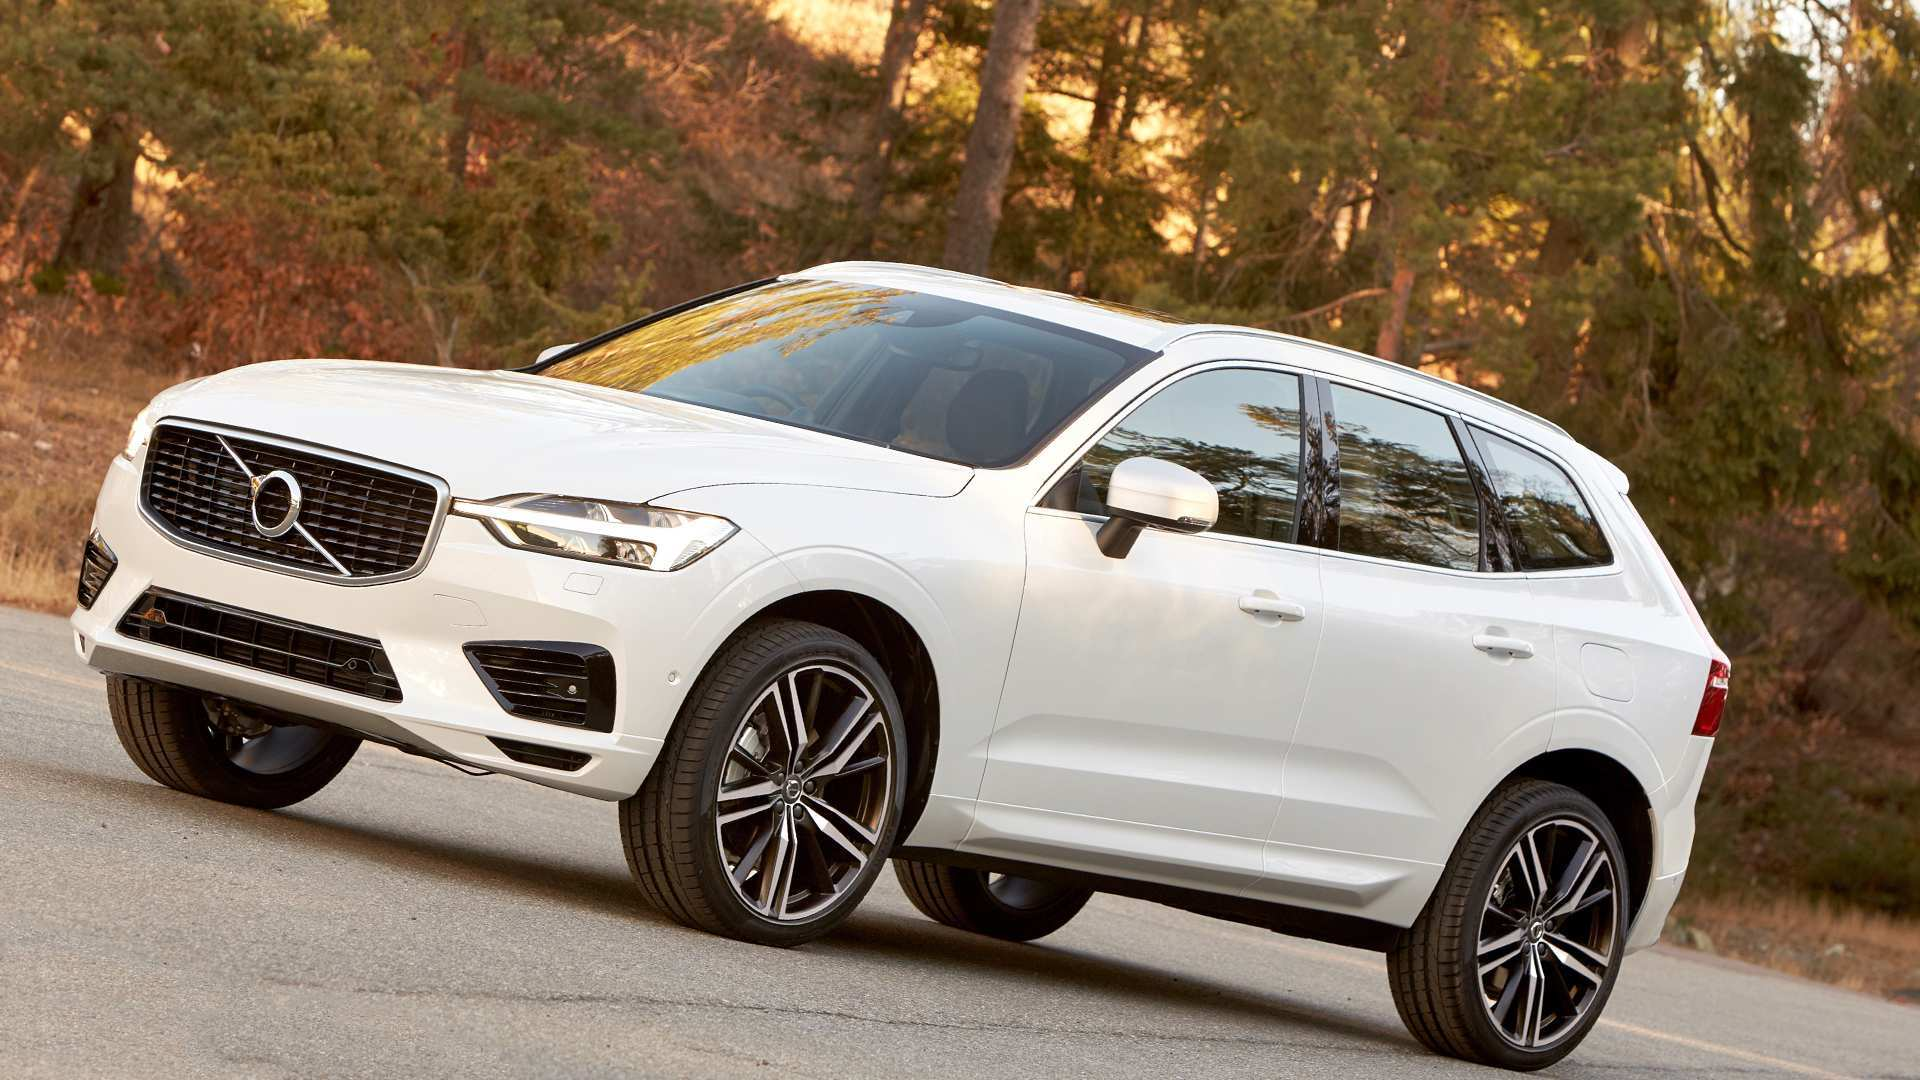 32 Concept of Best Volvo 2019 Xc60 Review Exterior Exterior by Best Volvo 2019 Xc60 Review Exterior